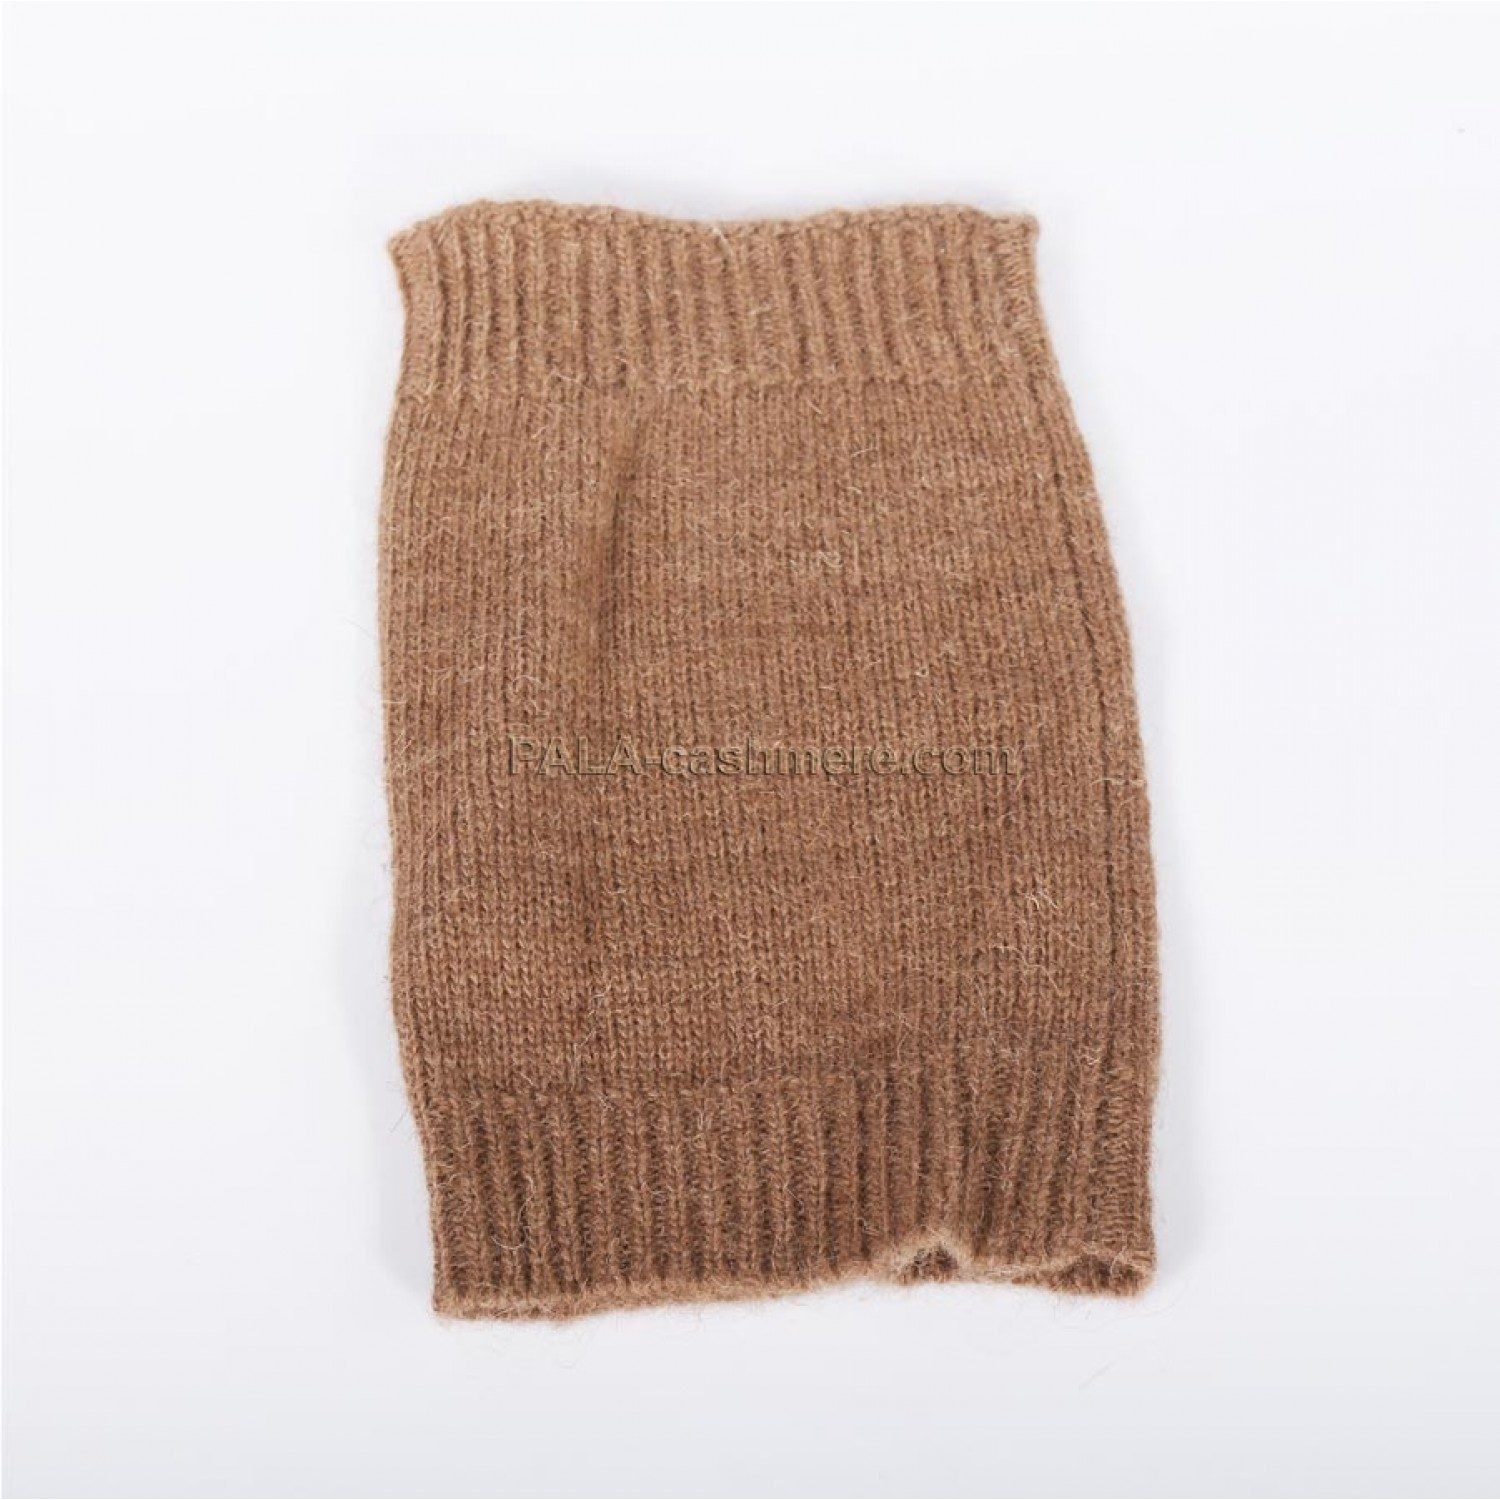 Thin Knitted Knee From Camel's Hair